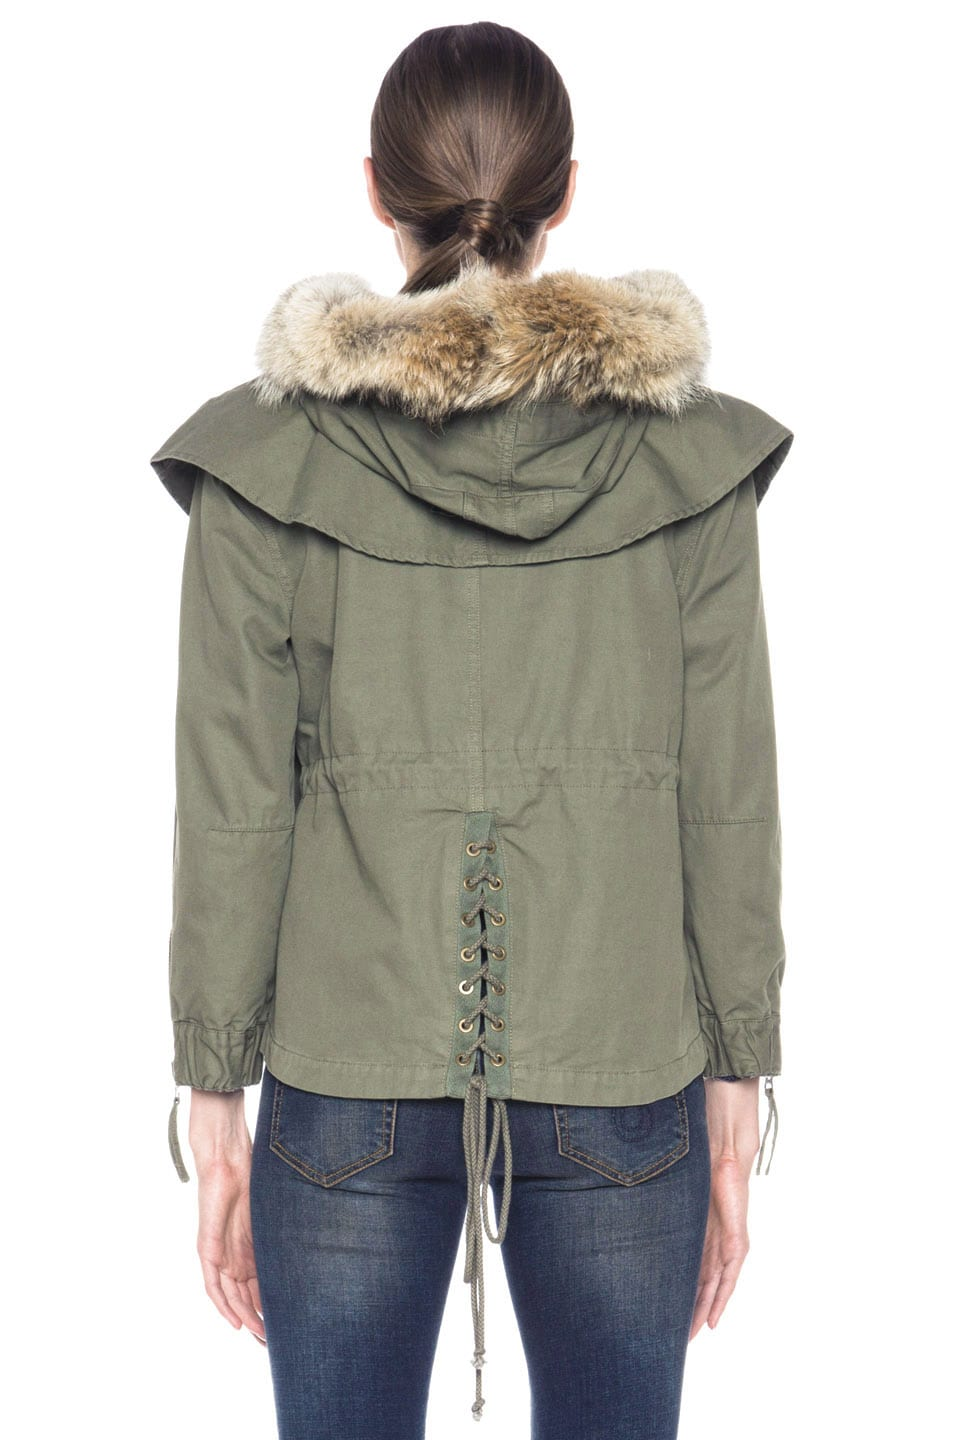 Image 5 of Skaist Taylor Cropped Cape Cotton Jacket with Fur in Army Green